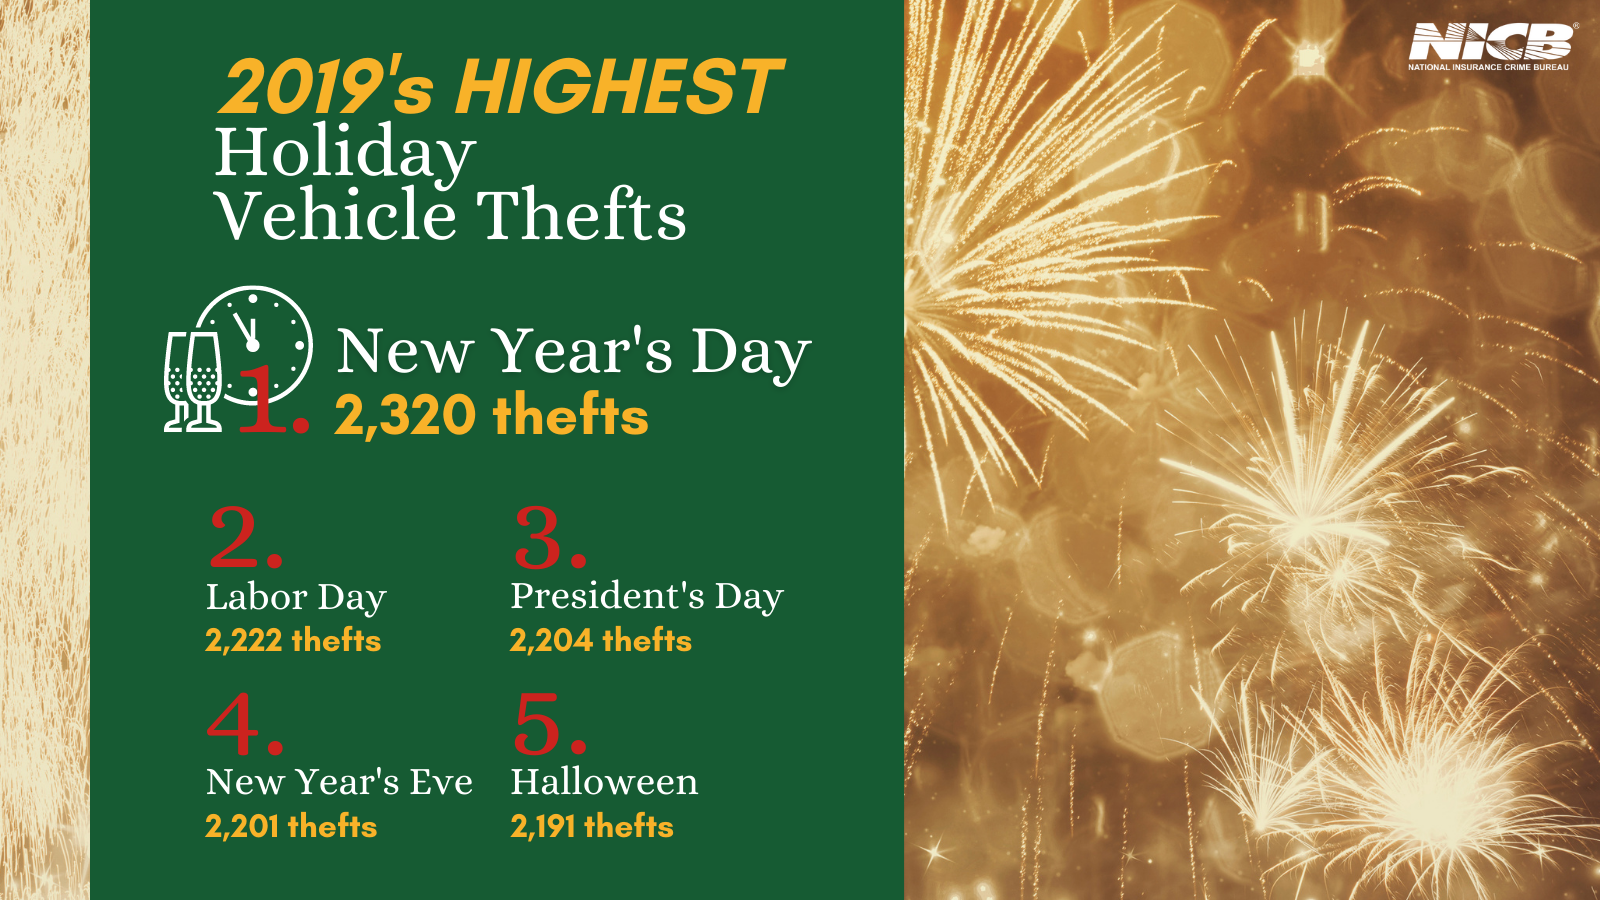 Holiday Vehicle Thefts 2019